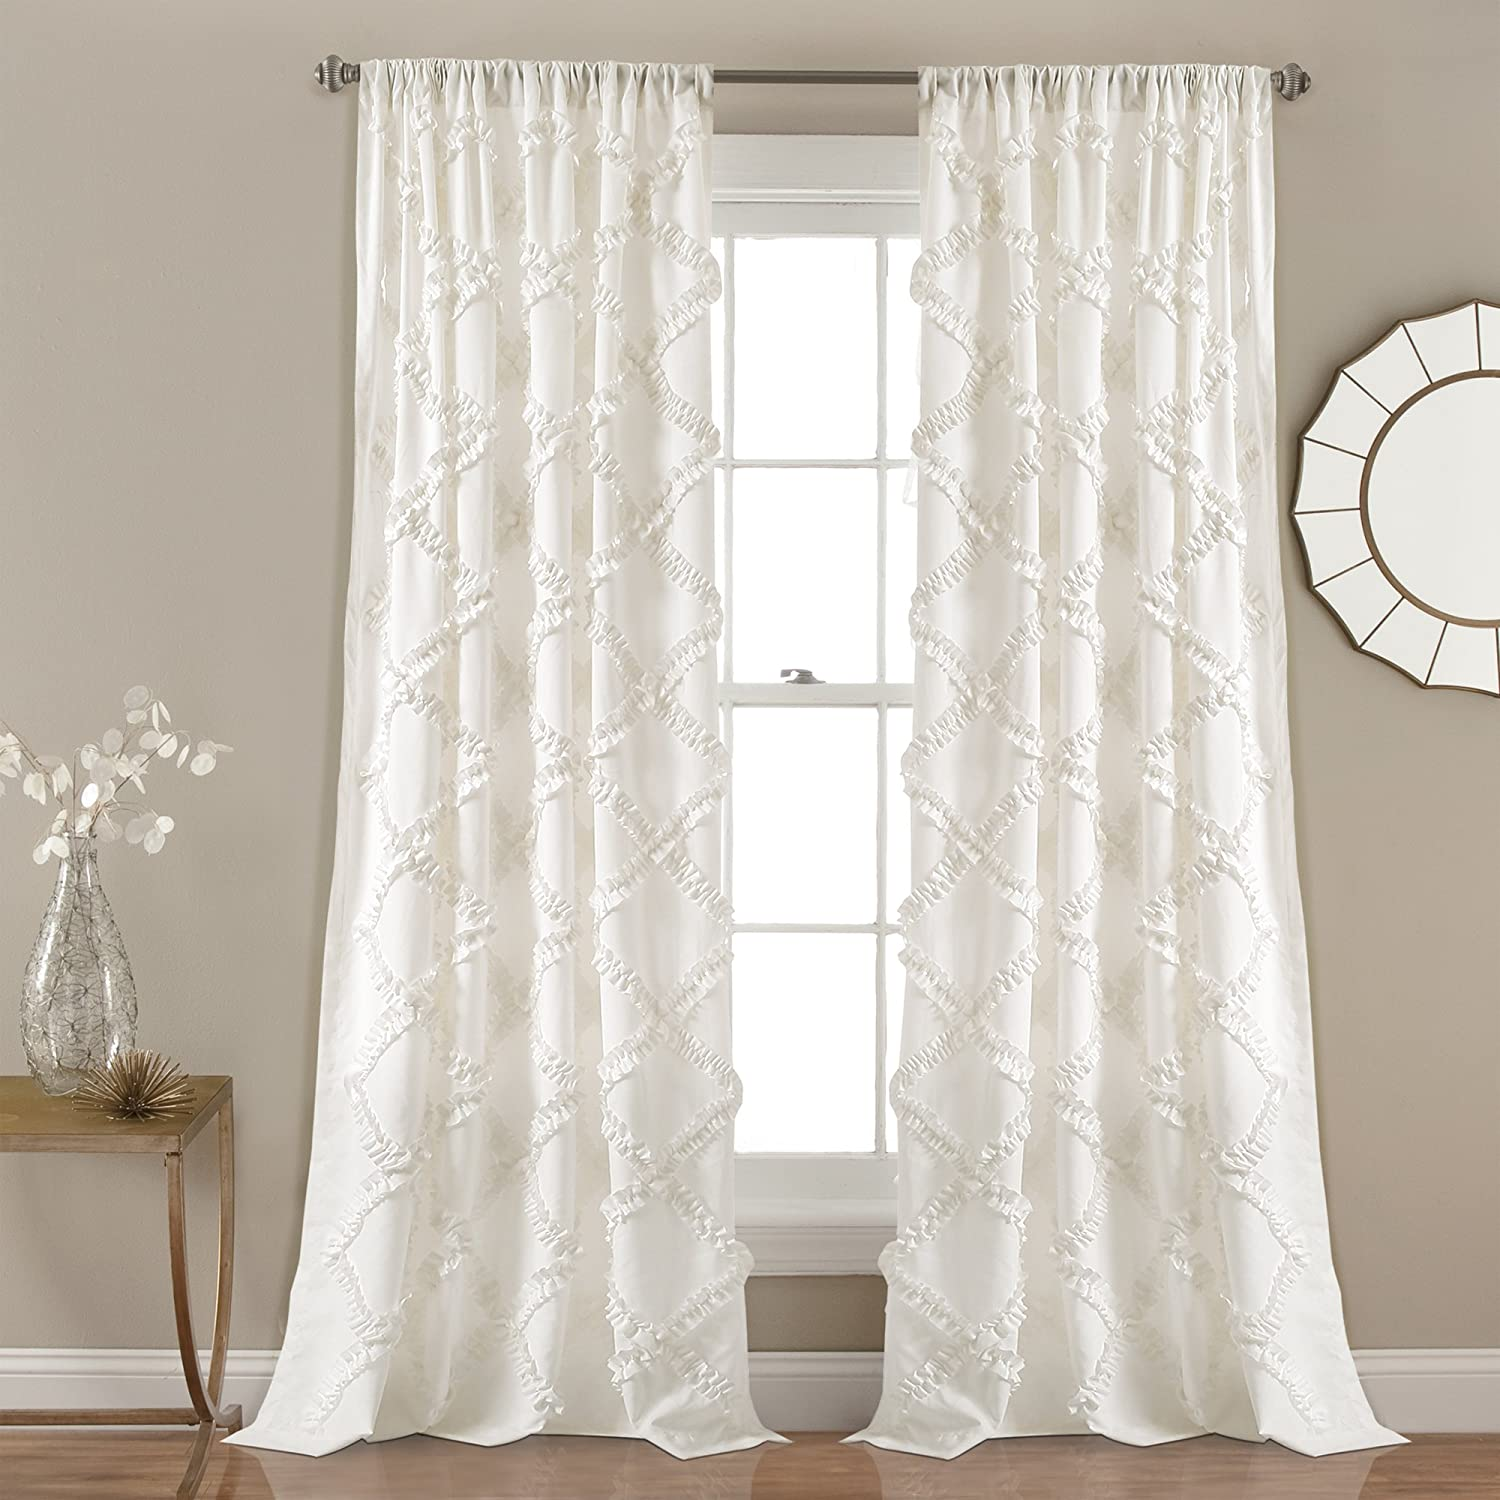 "Lush Decor Ruffle Diamond Curtains Textured Window Panel Set for Living, Dining Room, Bedroom (Pair), 84"" x 54"", White, 84"" x 54"","